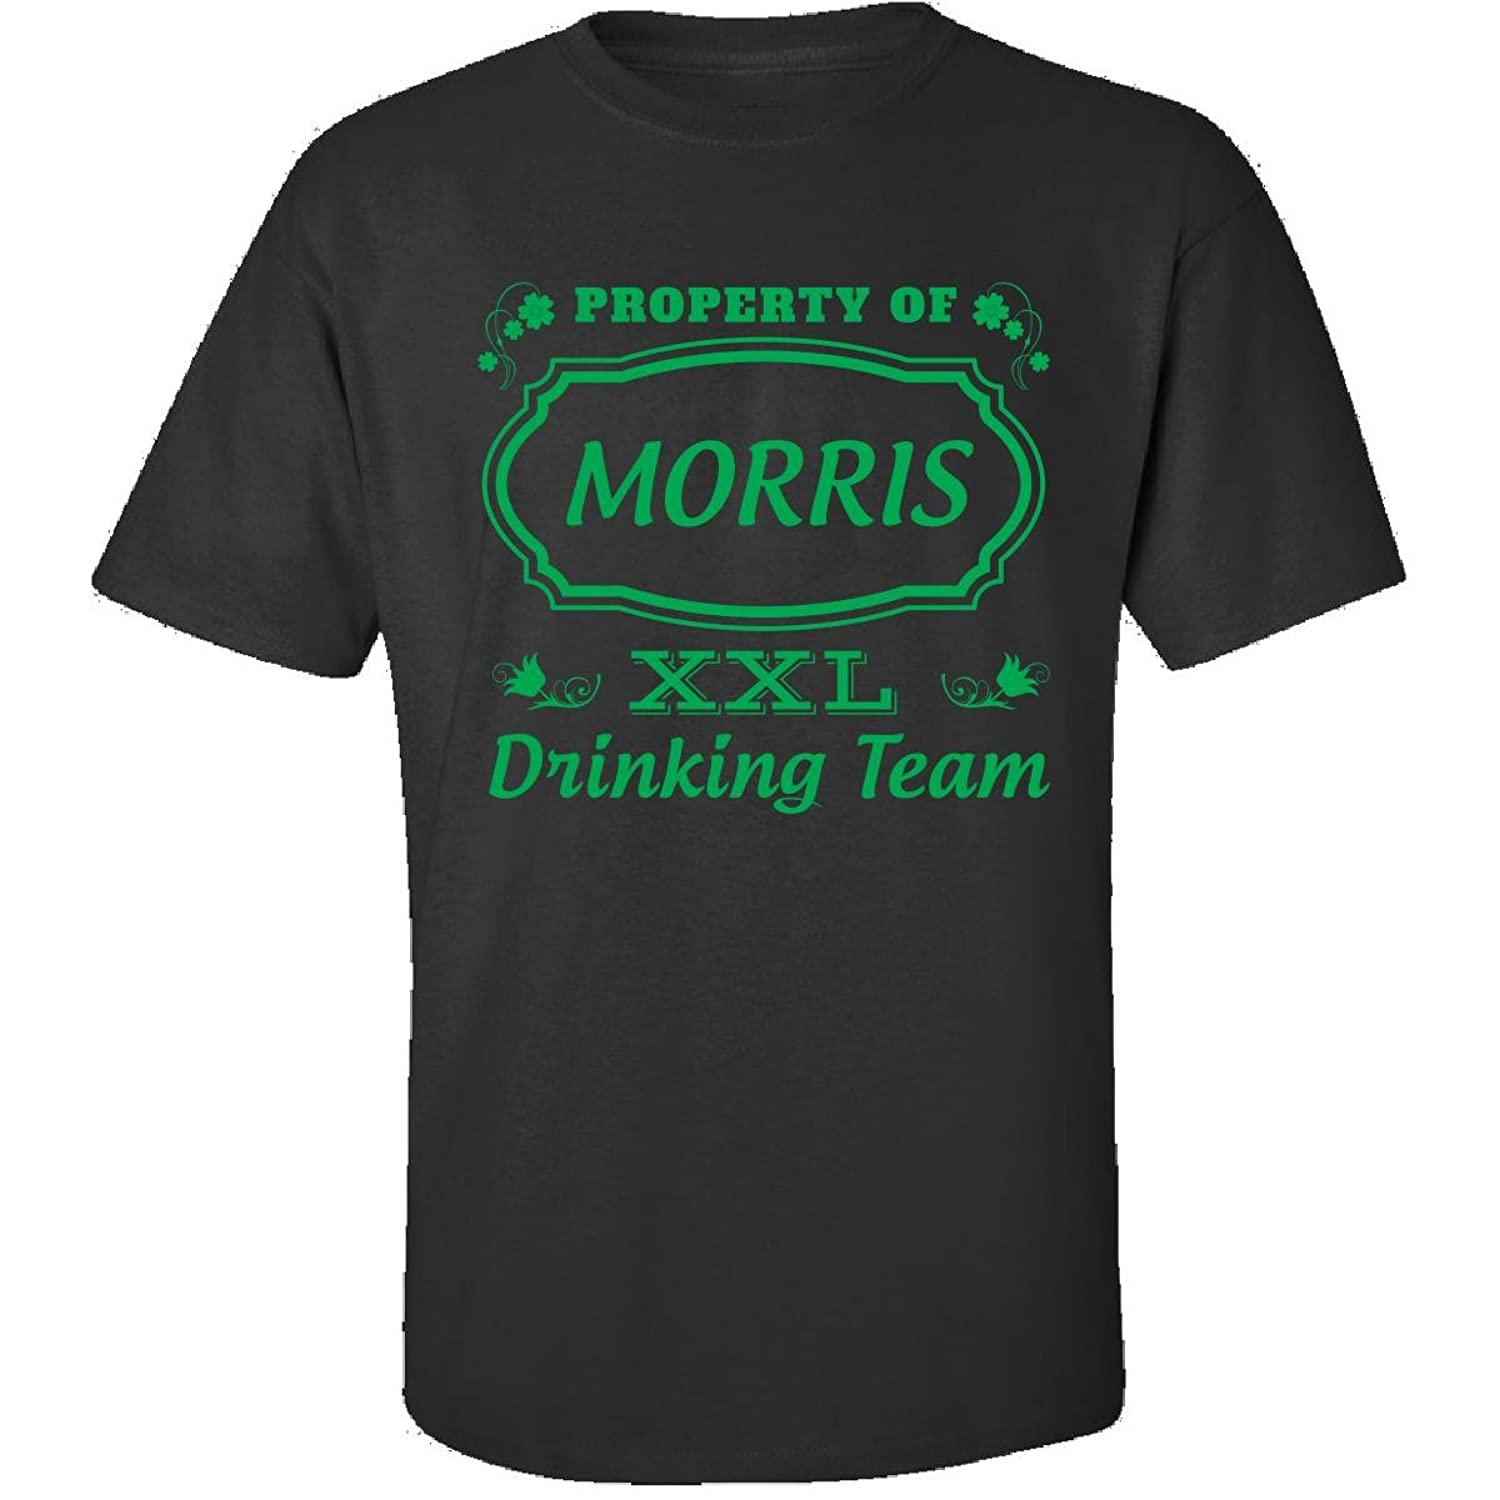 Property Of Morris St Patrick Day Beer Drinking Team - Adult Shirt